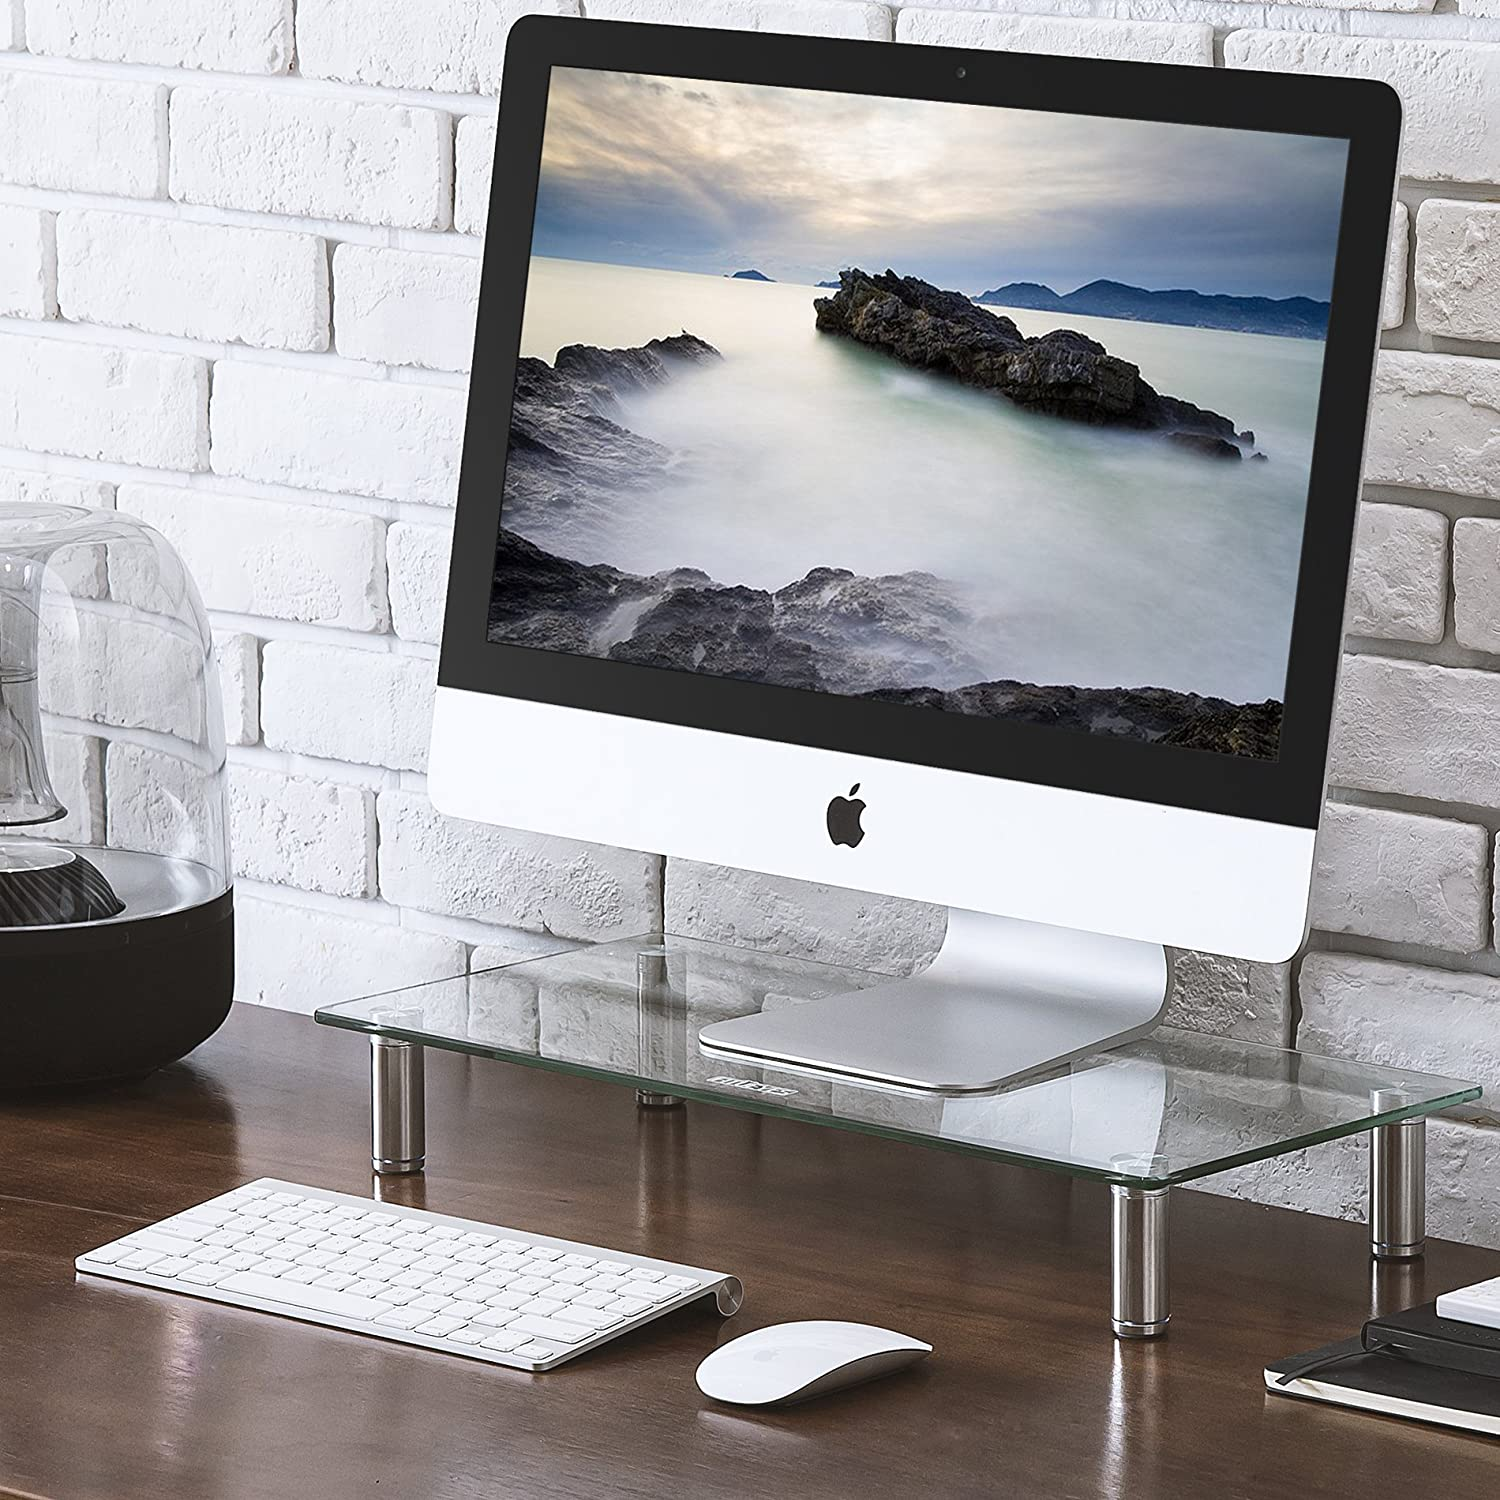 FITUEYES Clear Computer Monitor Riser Save Space Desktop Stand for Xbox One//Component//Flat Screen TV,DT103801GC